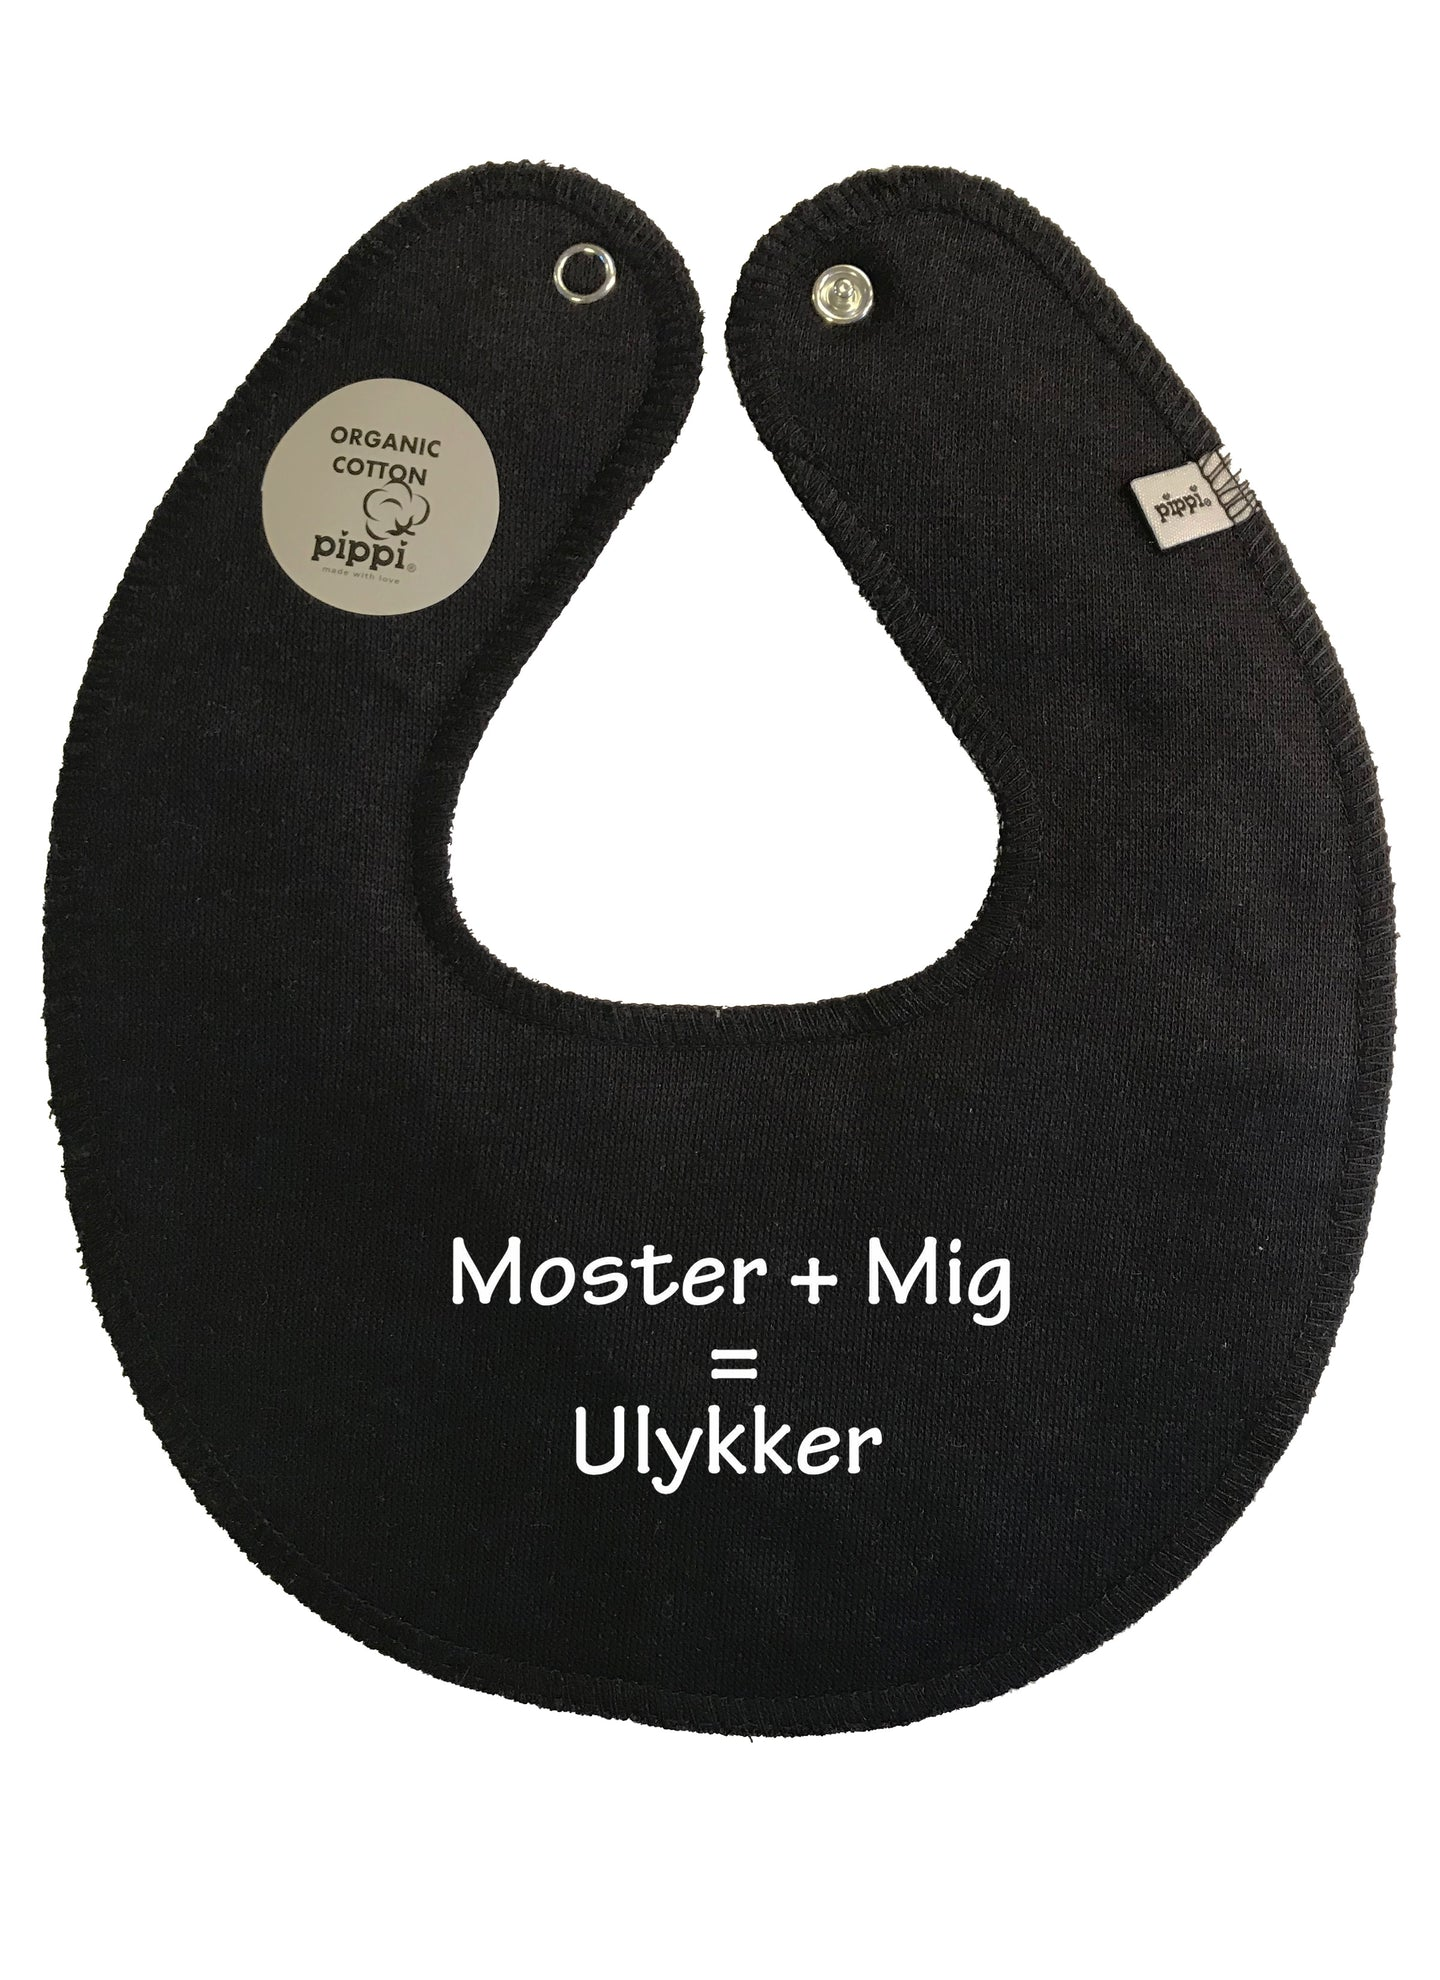 Moster + mig = ulykker